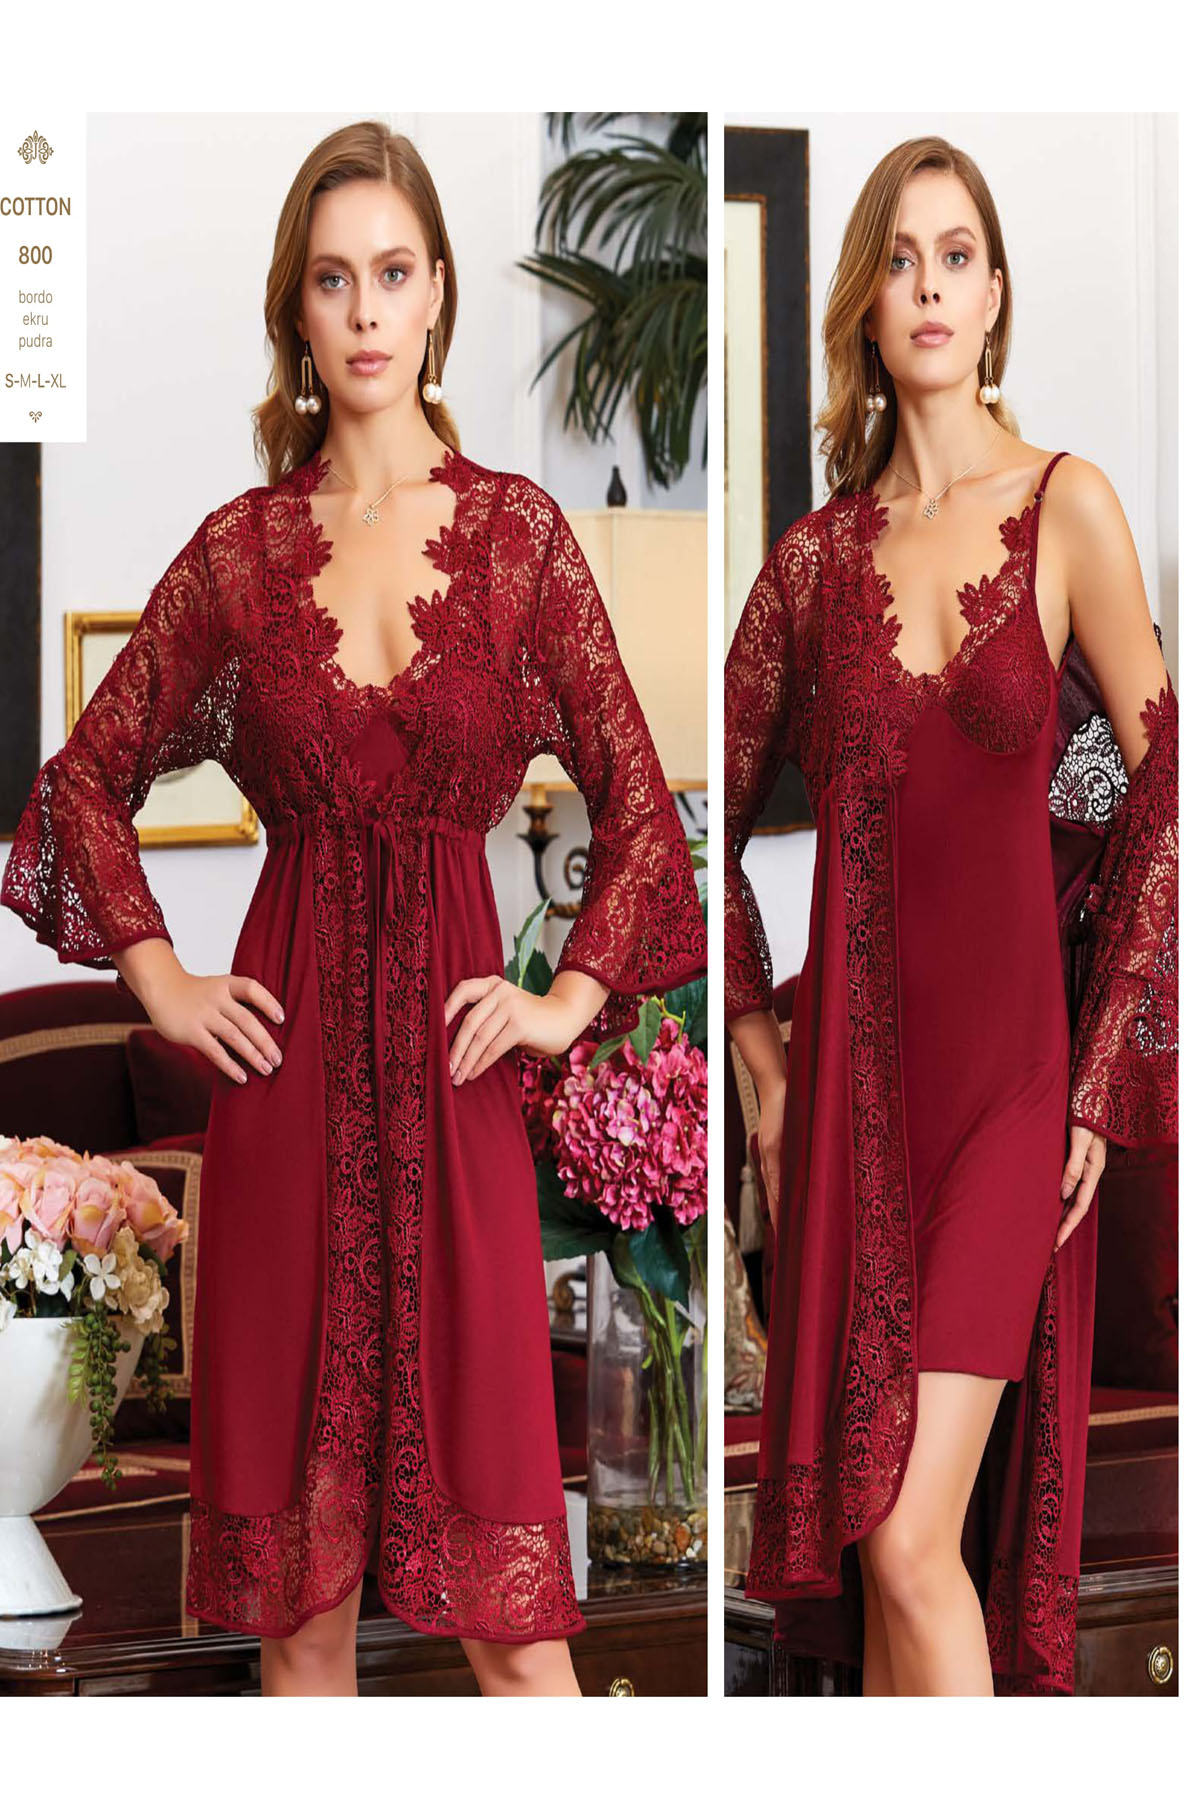 Women Cotton Ruched Long Nightgown And Dressing Gown Pajamas Set 6 Piece Dress At Home Comfortable Sleep Sexy Size S M L XL 800